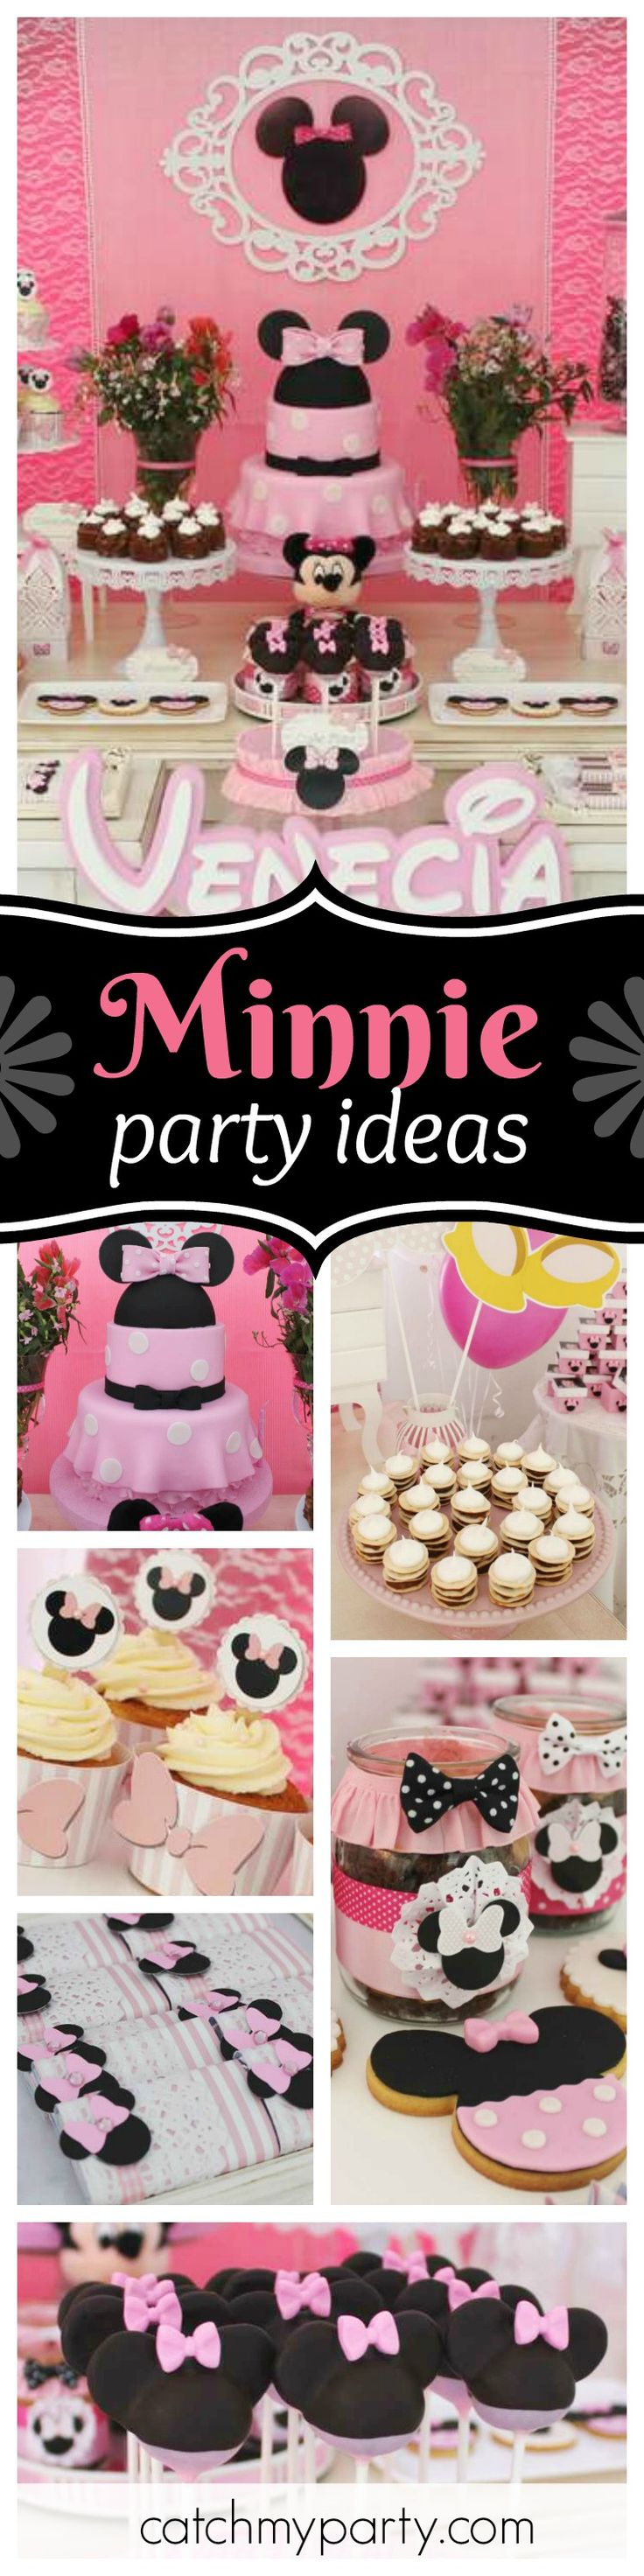 You do not want to miss this pretty pink Minnie Birthday Party! The Minnie Birthday cake is amazing!! See more party ideas and share yours at CatchMyParty.com